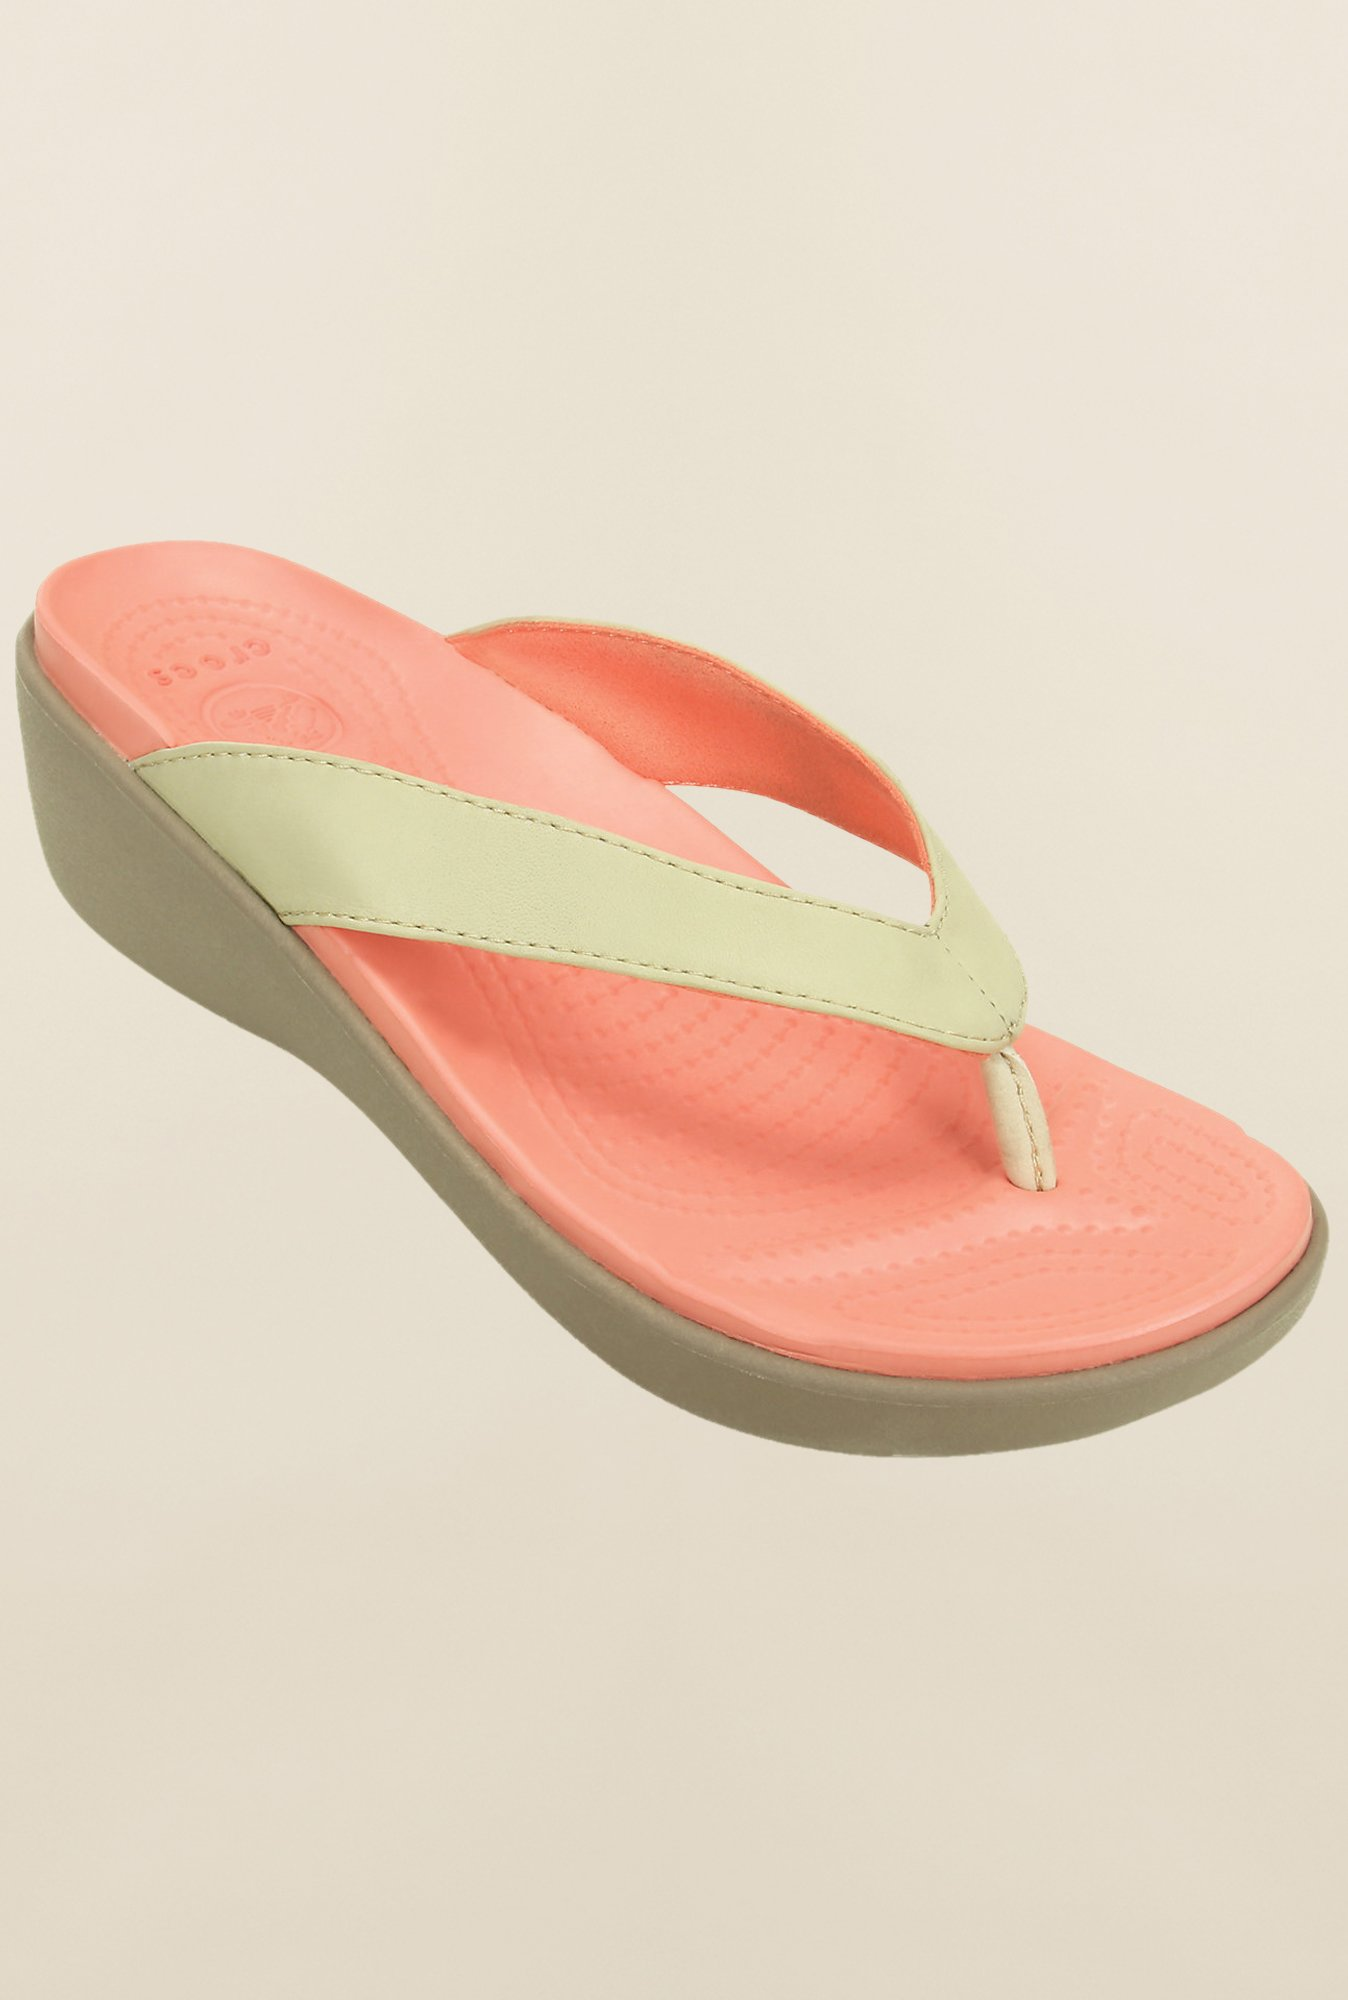 Crocs Capri Cream & Peach Sandals